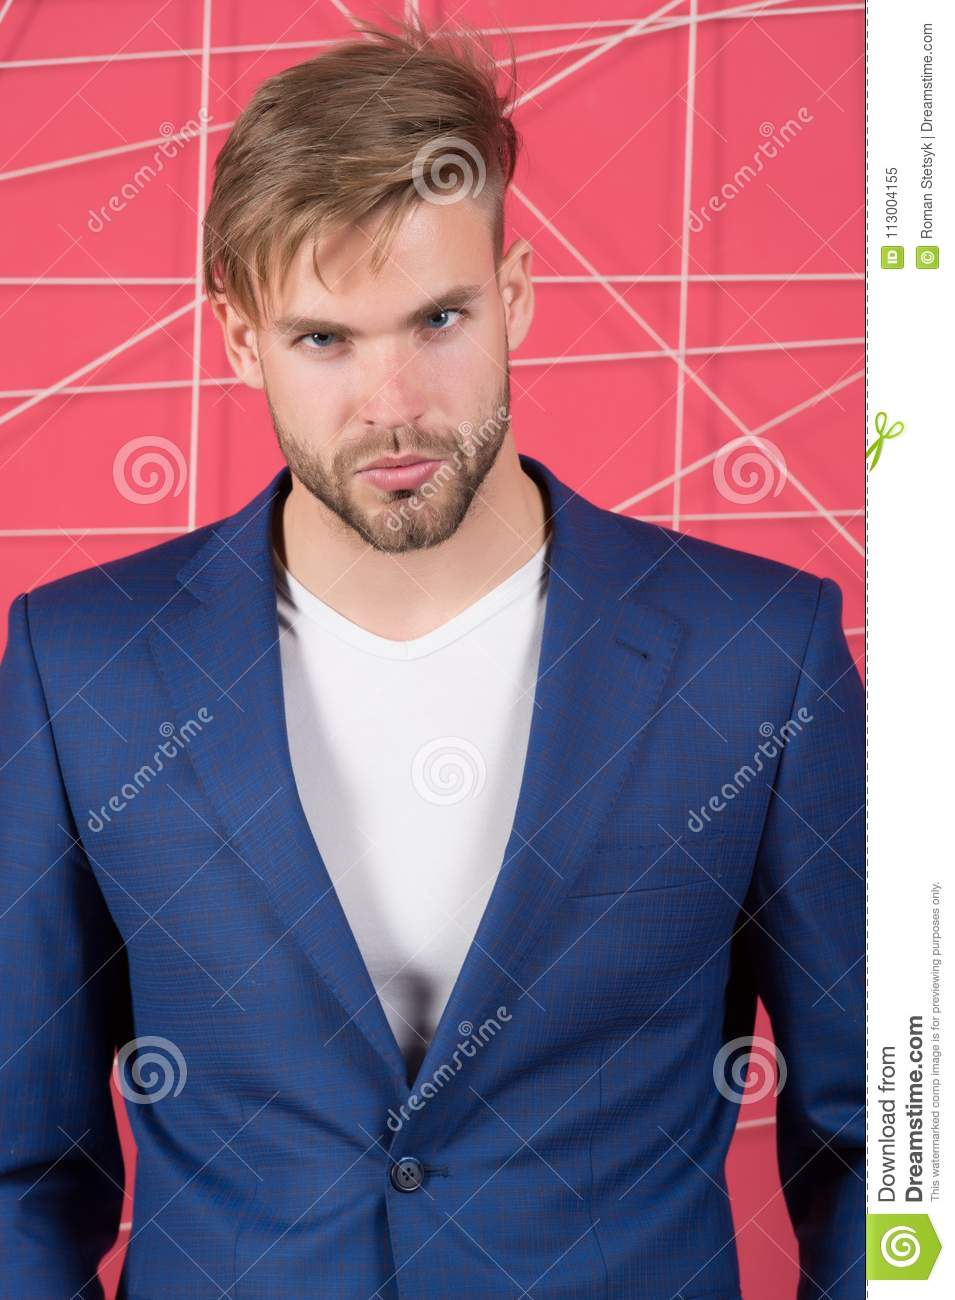 Man In Formal Suit Jacket And Tshirt Fashion Businessman With